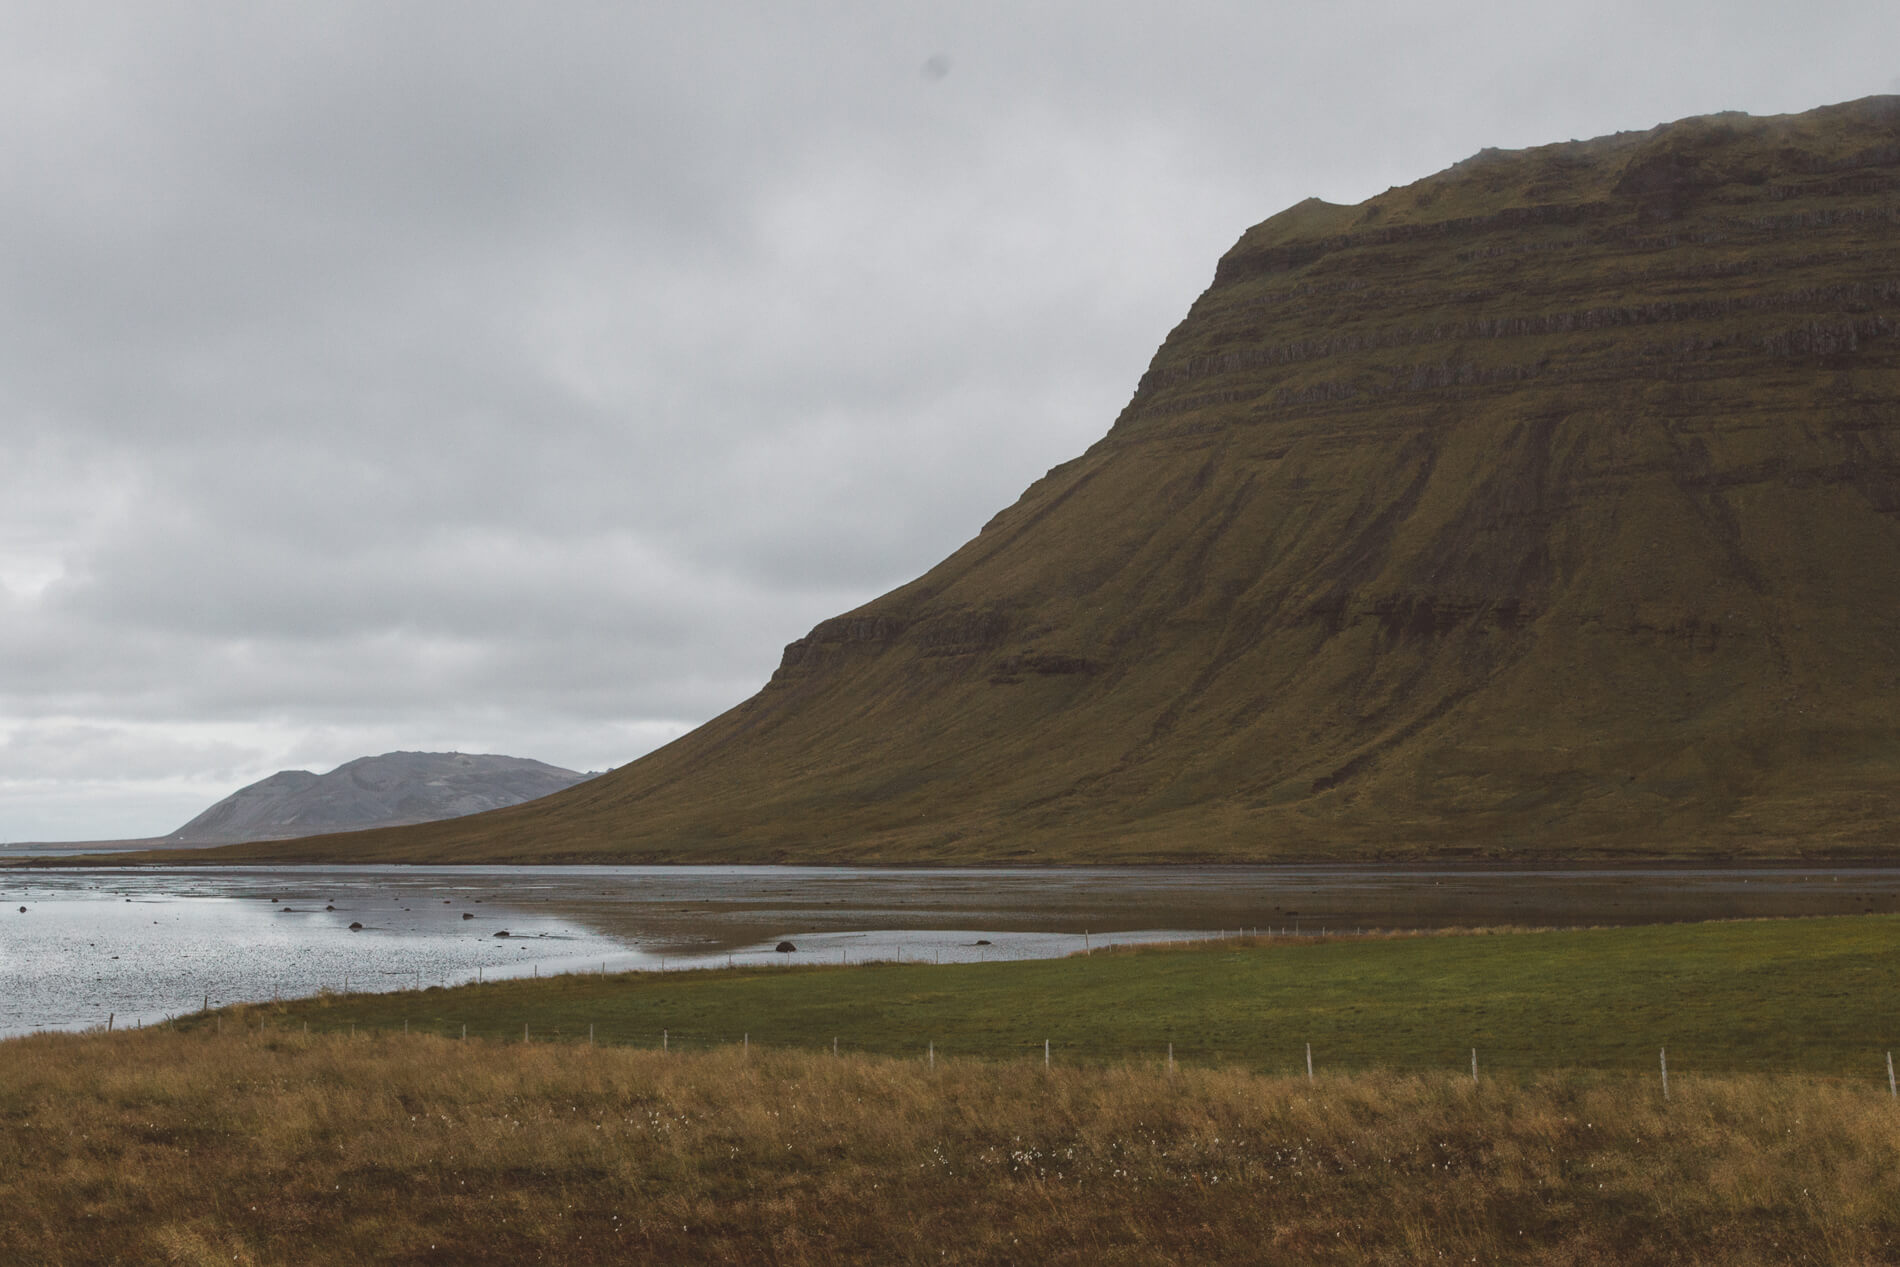 west iceland, iceland itinerary, off the beaten path iceland, kirkjufell